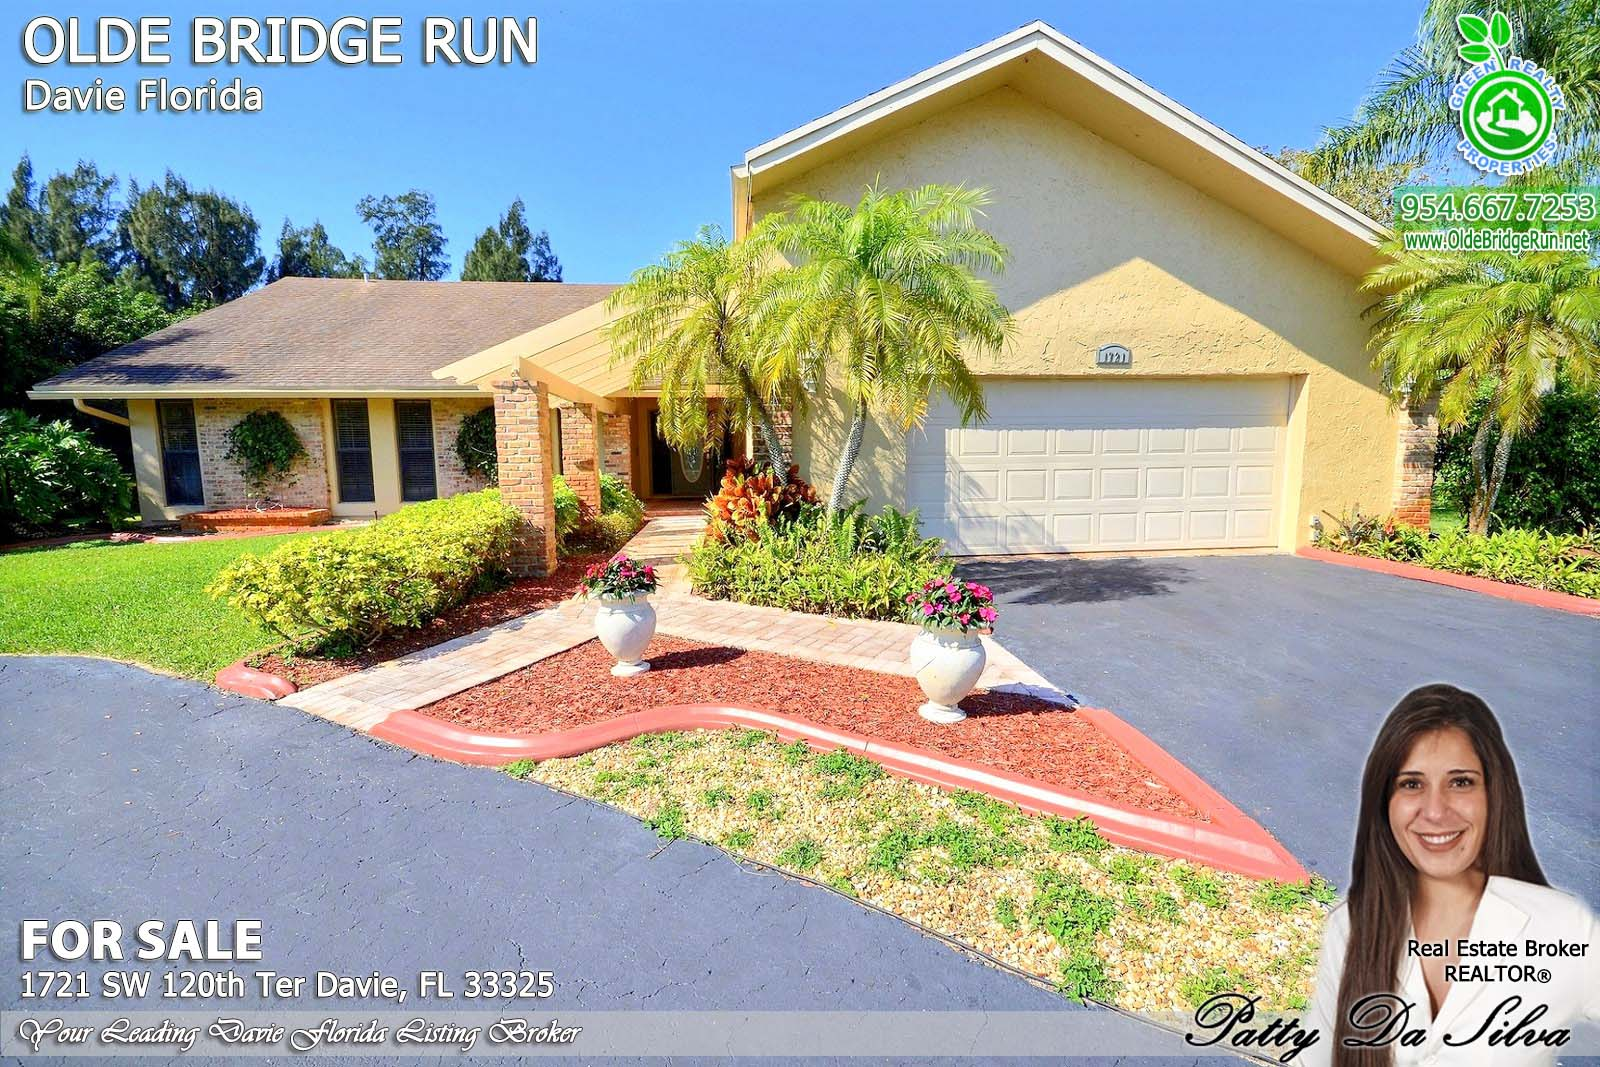 Olde Brodge Run Homes in Davie FL beautiful properties